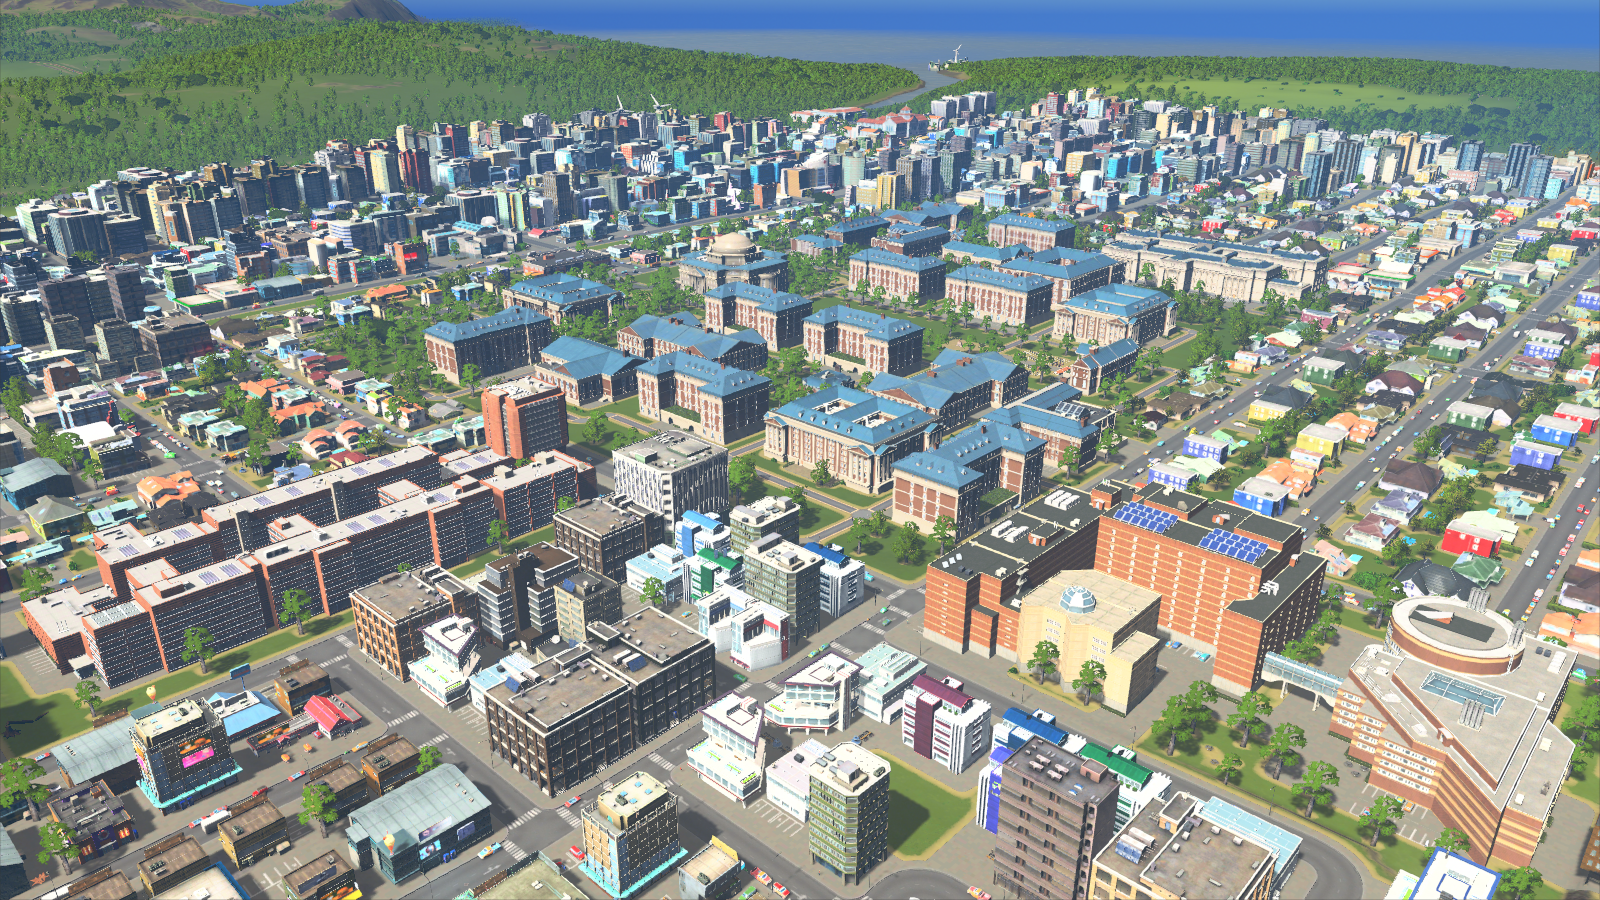 dev_diary_1_campus_area_v2.png